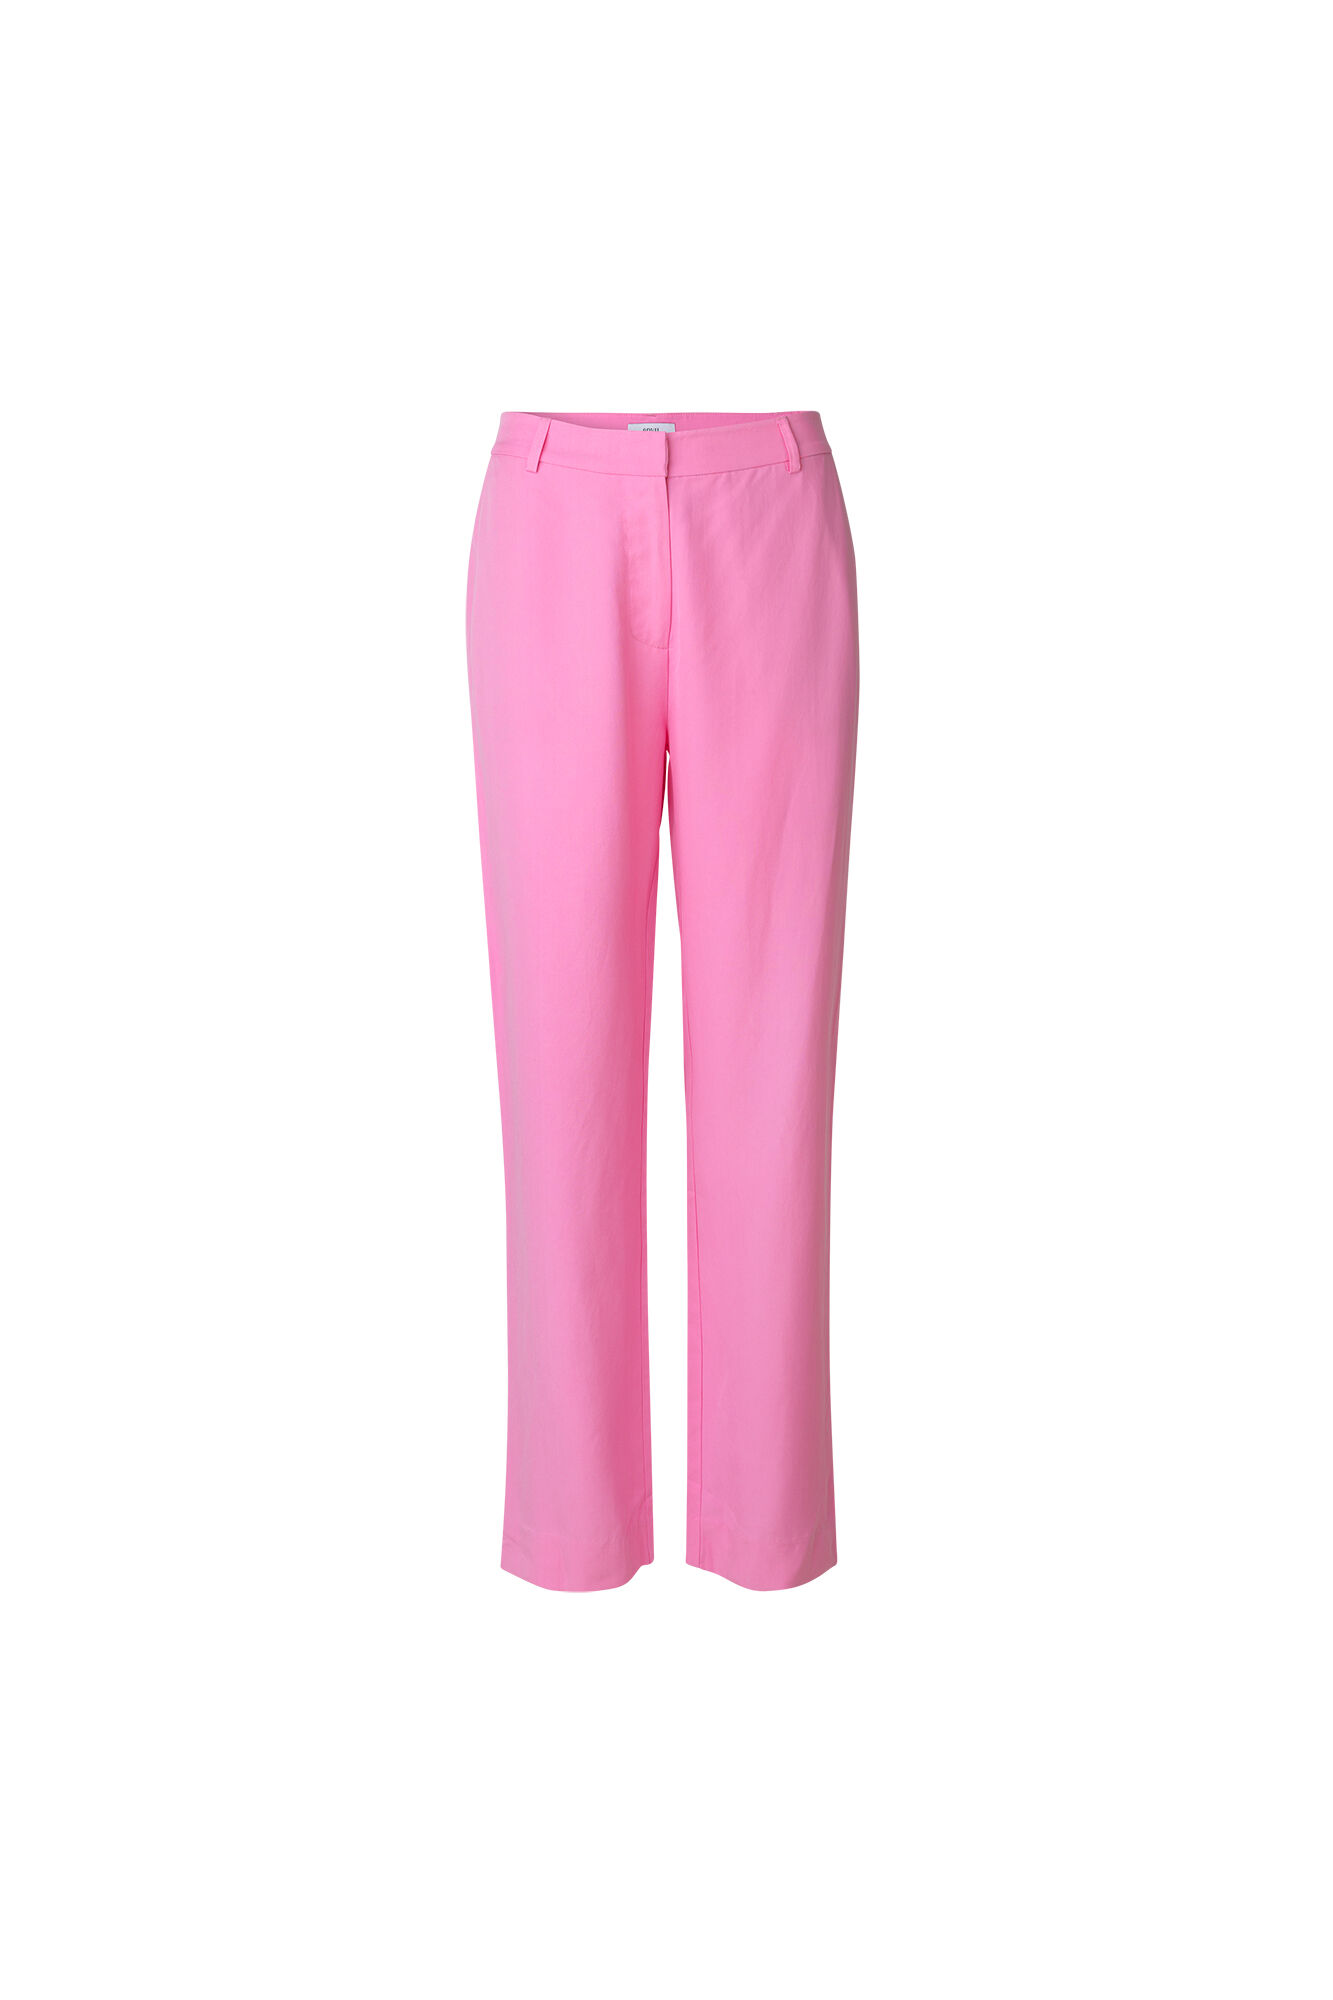 ENCOCOA PANTS 6398, FLURO PINK